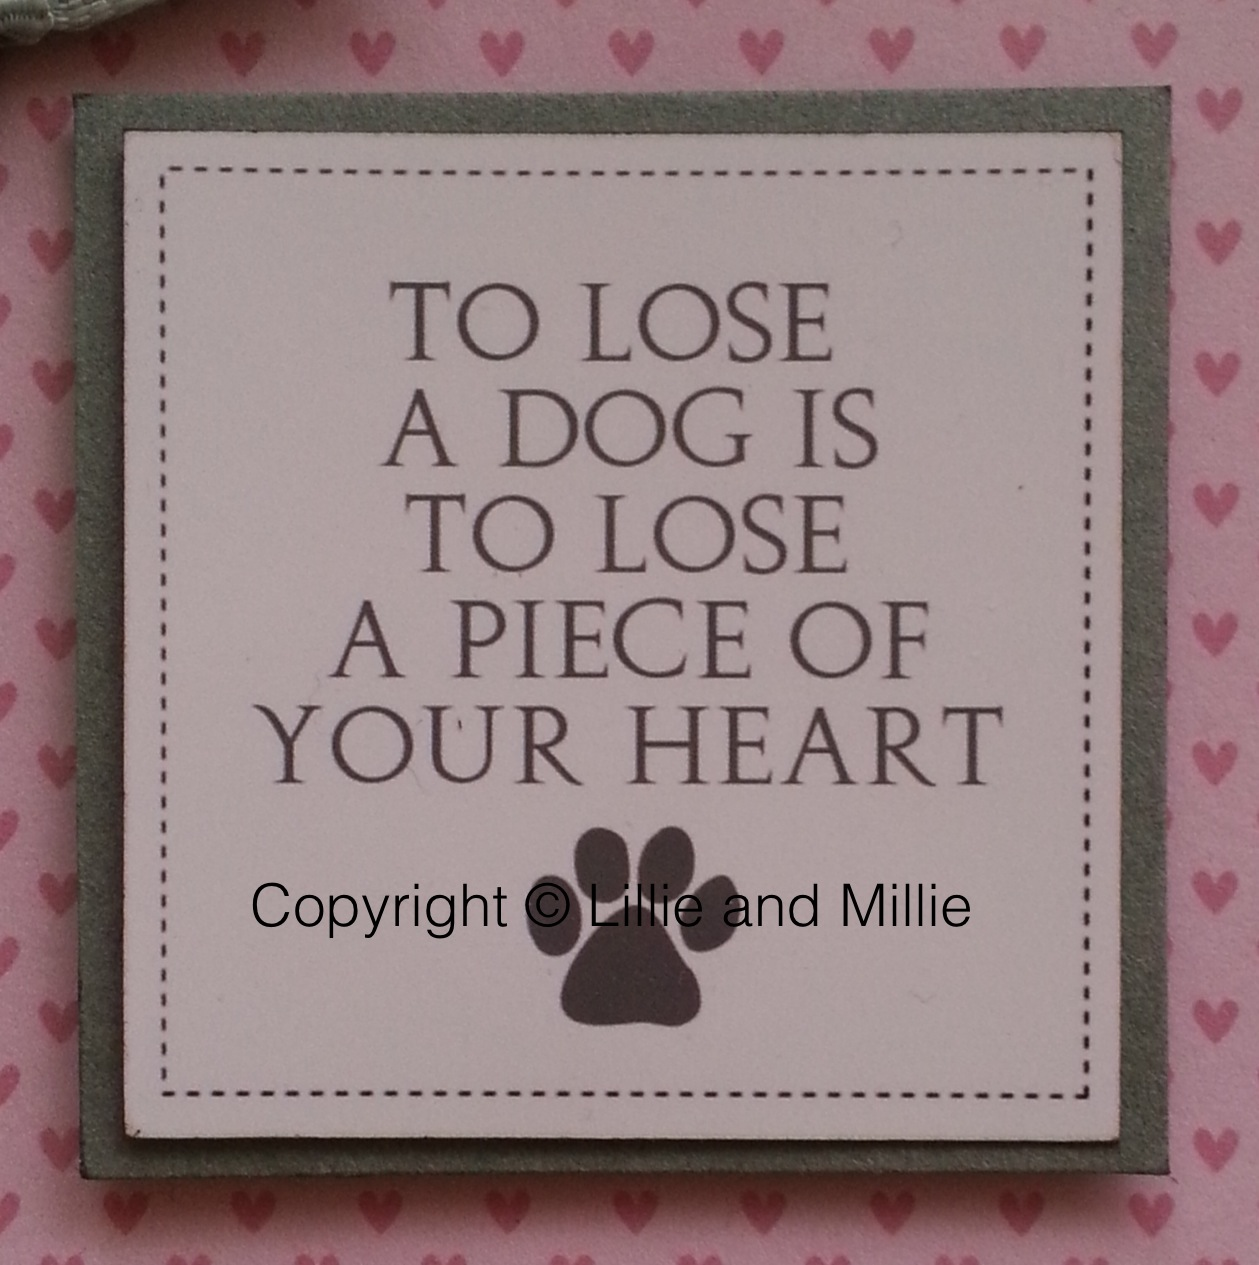 Sympathy Loss Dog Cat Pet Greeting Handmade Handcrafted Cards